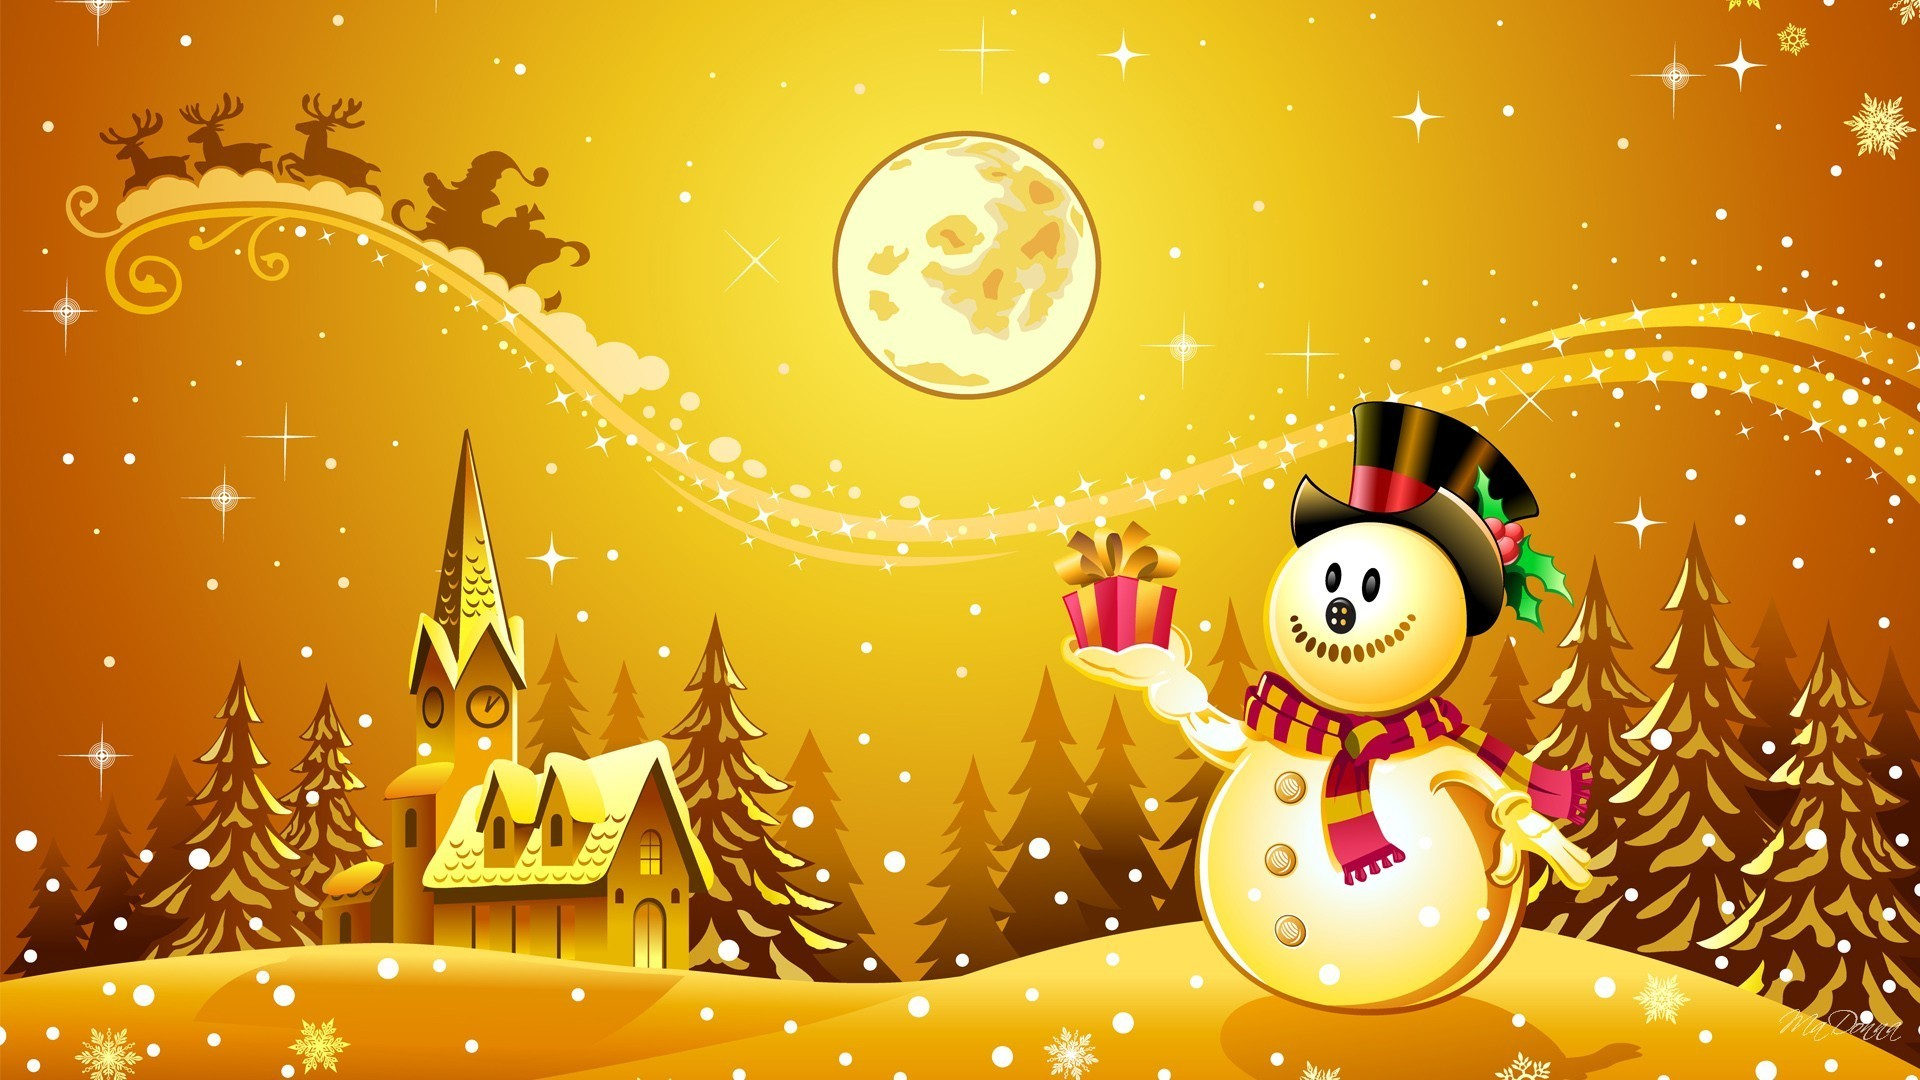 Navidad Tag – Reindeer Claus Holiday Snow Golden Nick Navidad Gold  Christmas Snowman Moon Full Santa